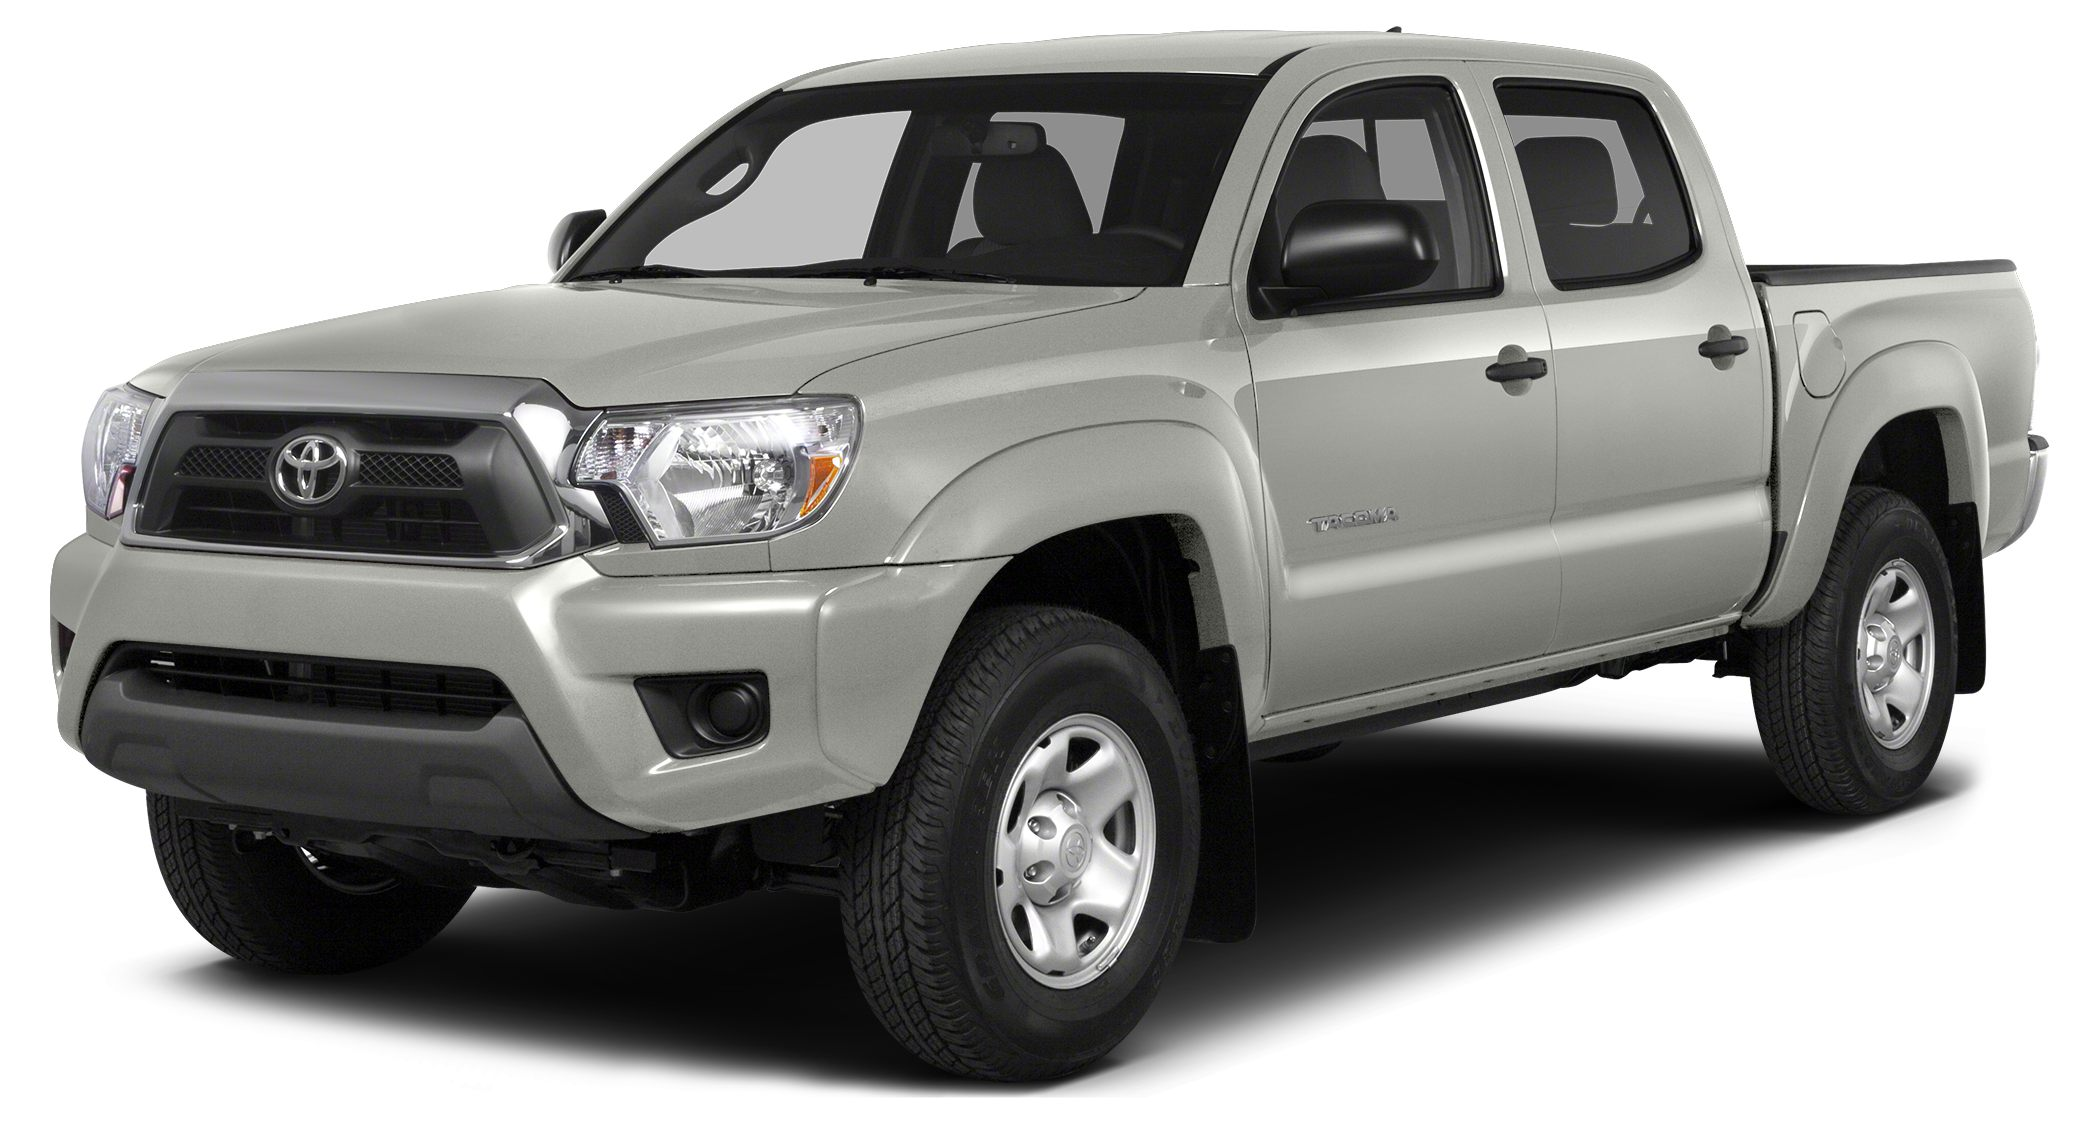 2012 Toyota Tacoma PreRunner Come see this 2012 Toyota Tacoma PreRunner Its Automatic transmissio